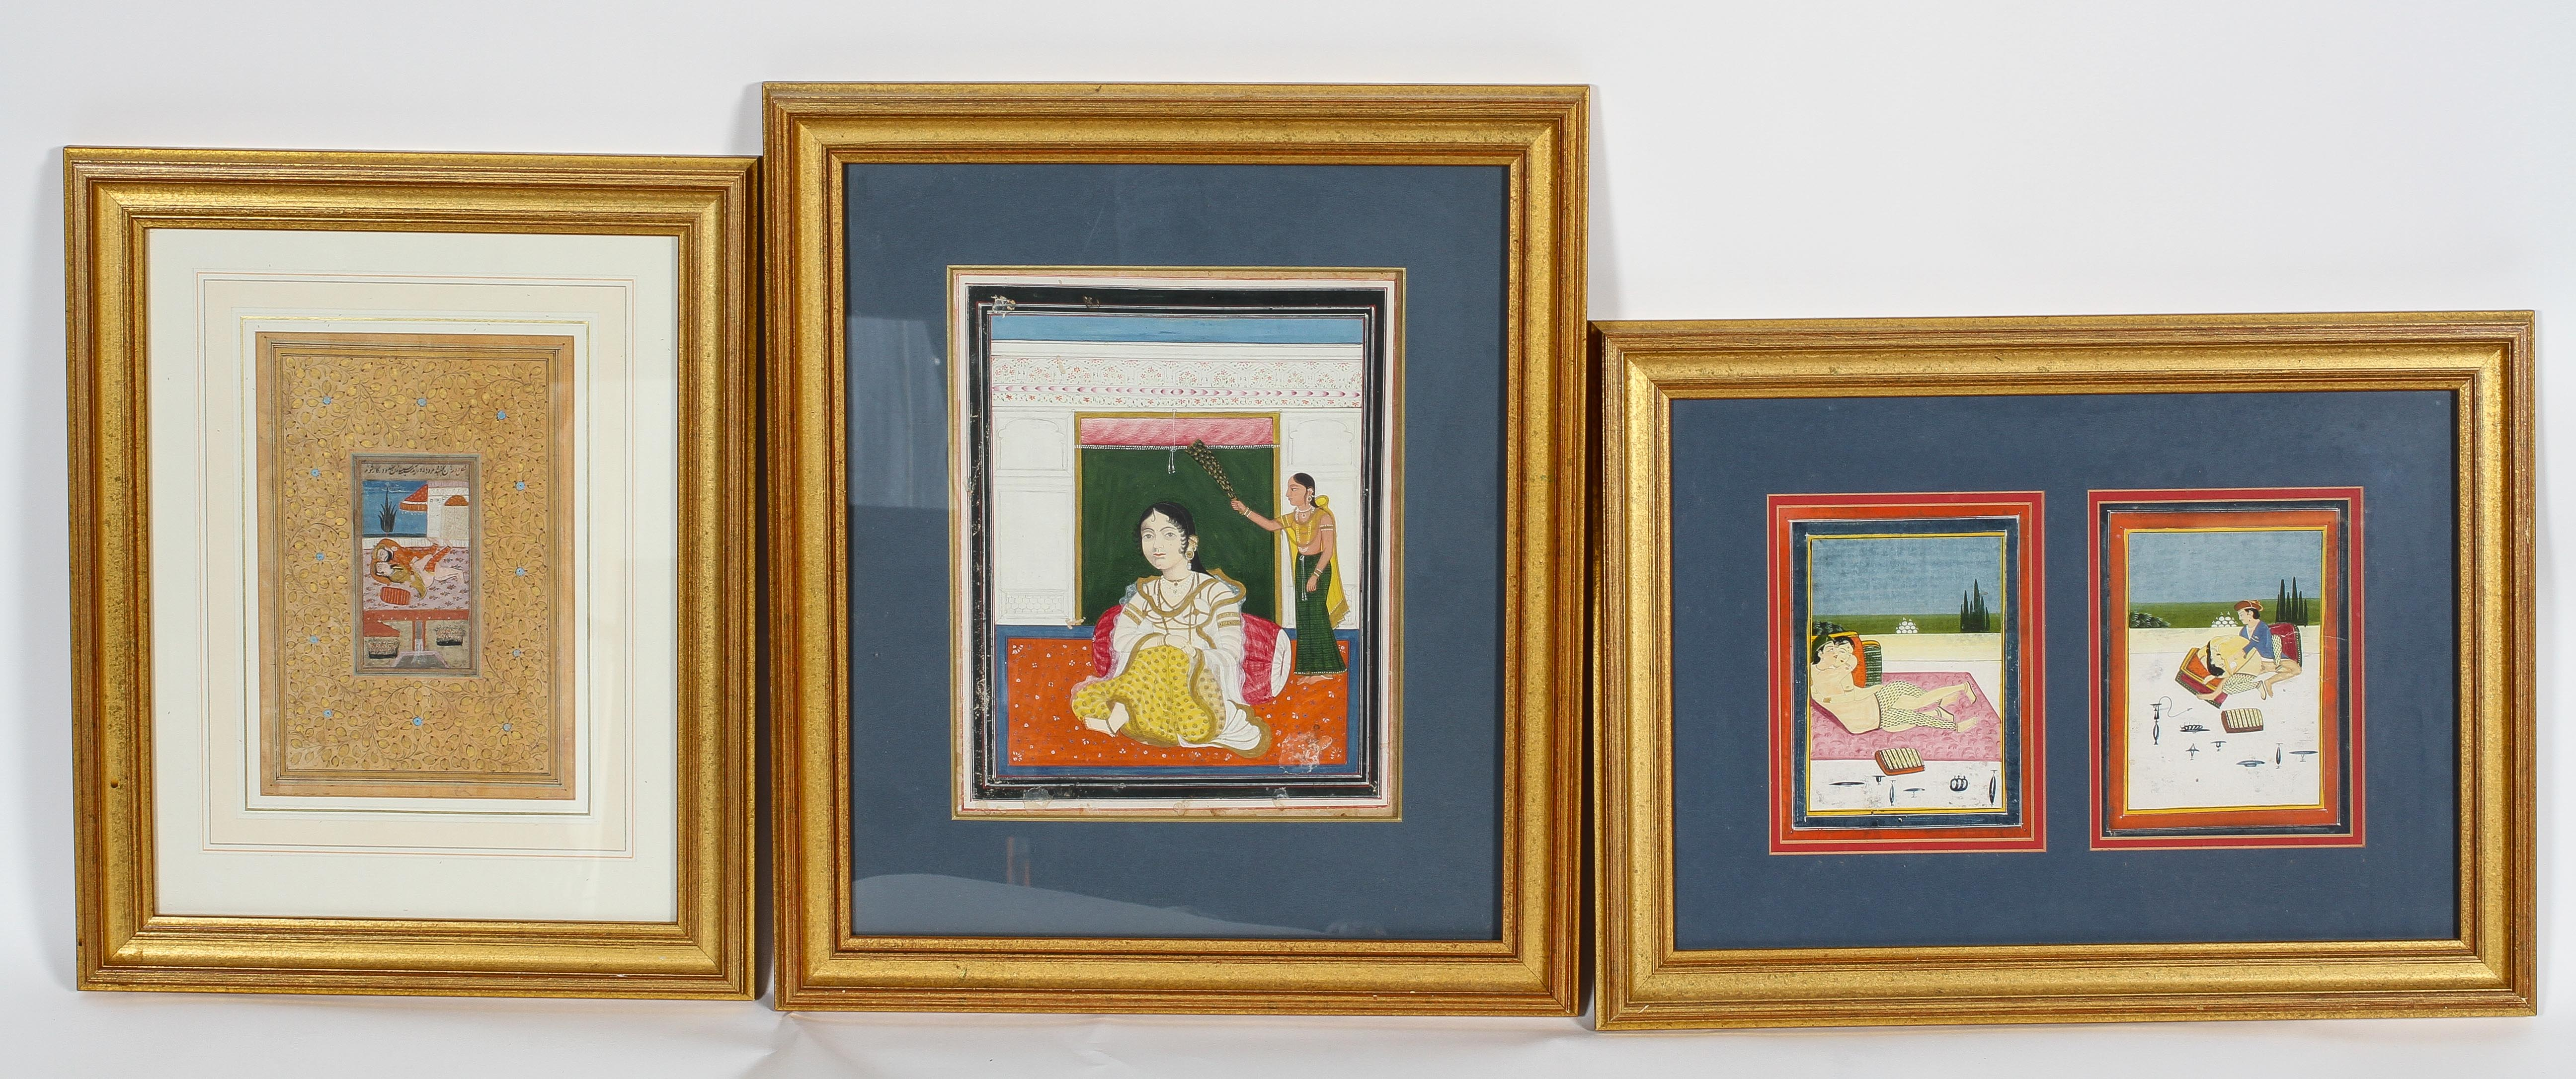 Indian miniatures, a pair of erotic scenes, watercolour and gilding, in one frame,